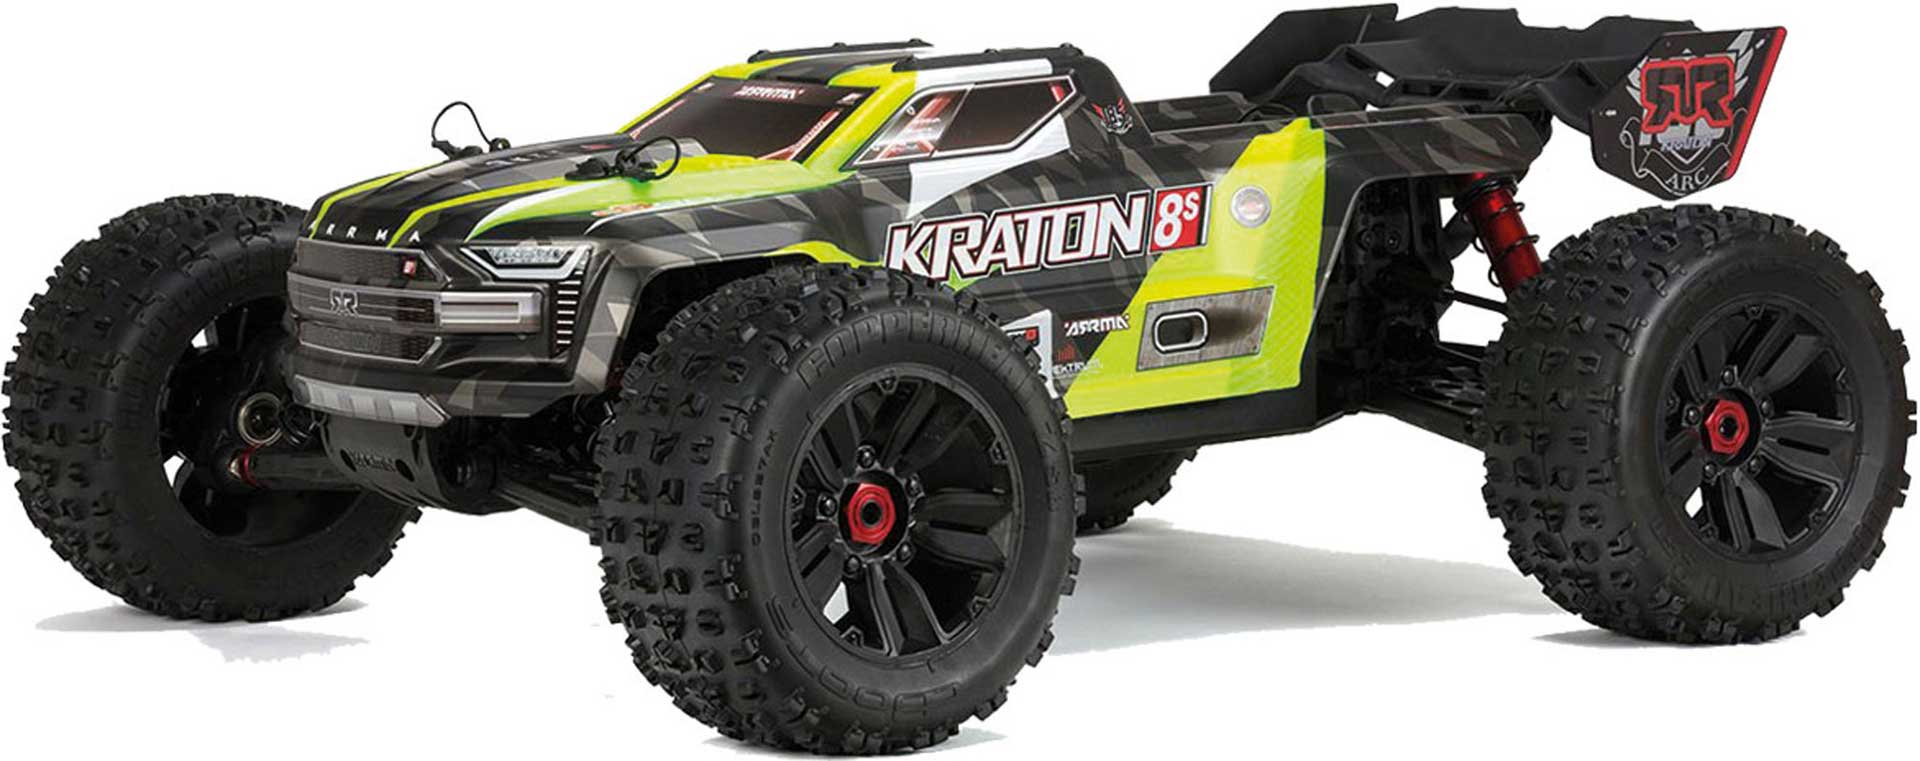 Arrma 1/5 KRATON 4WD 8S BLX Speed Monster Truck RTR:GRN